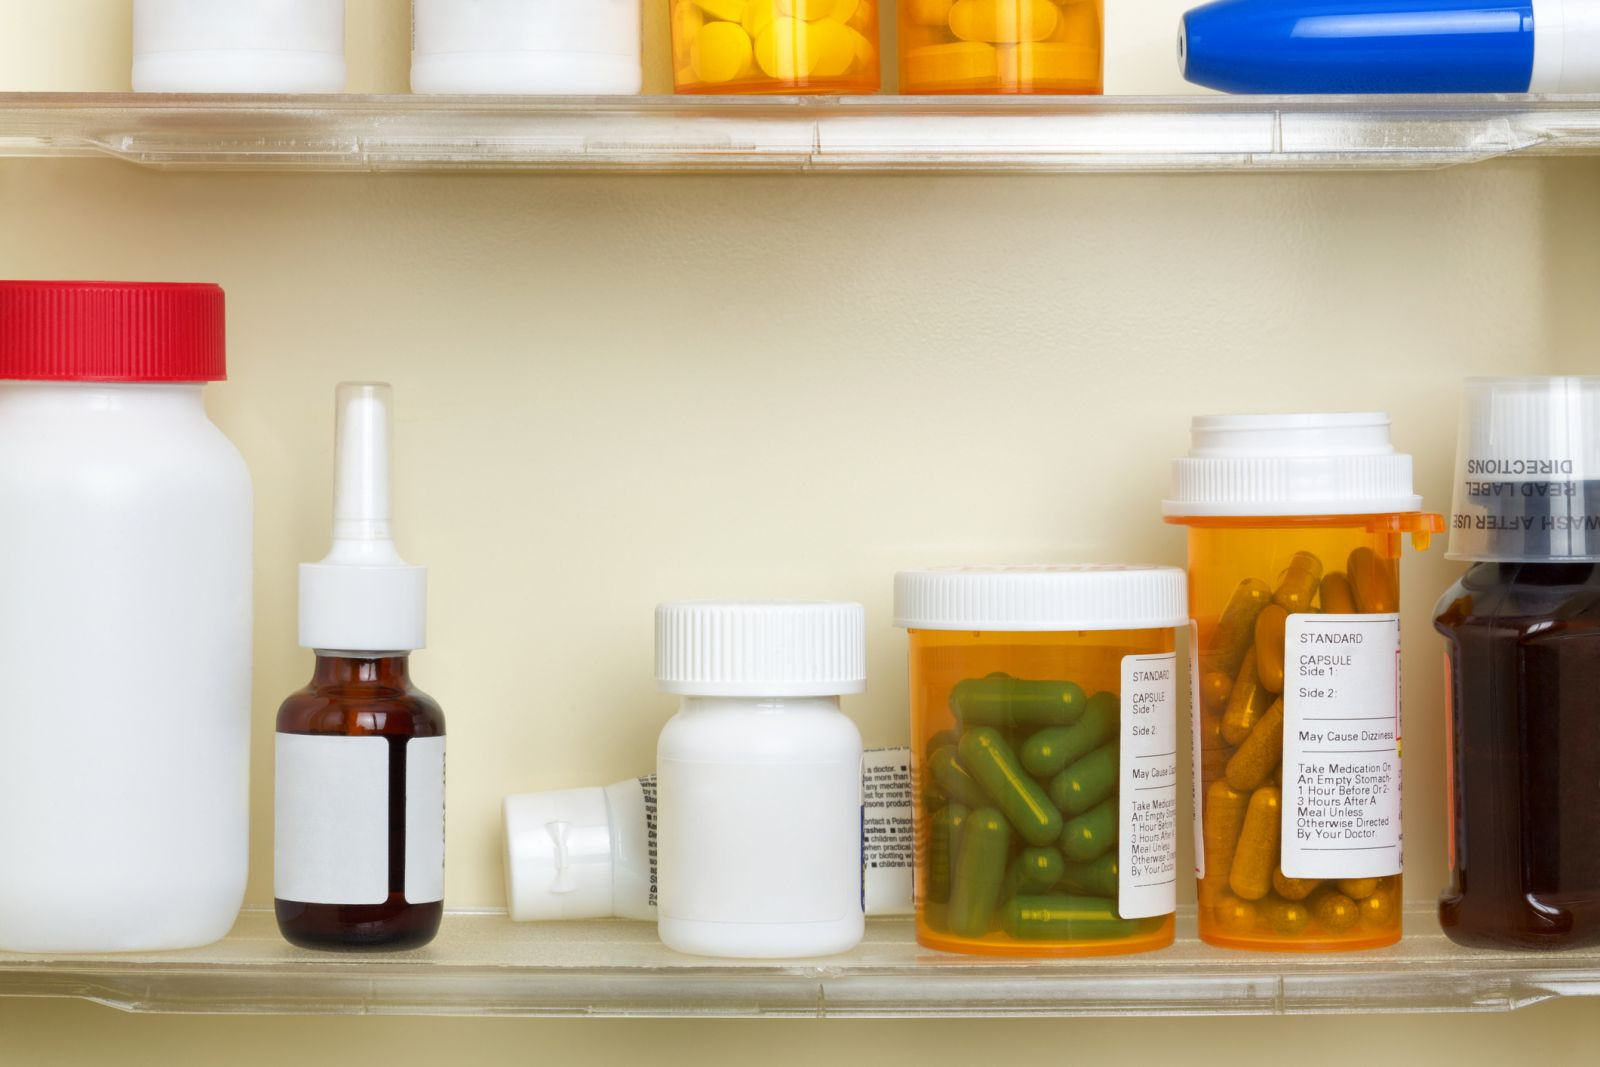 expired medications